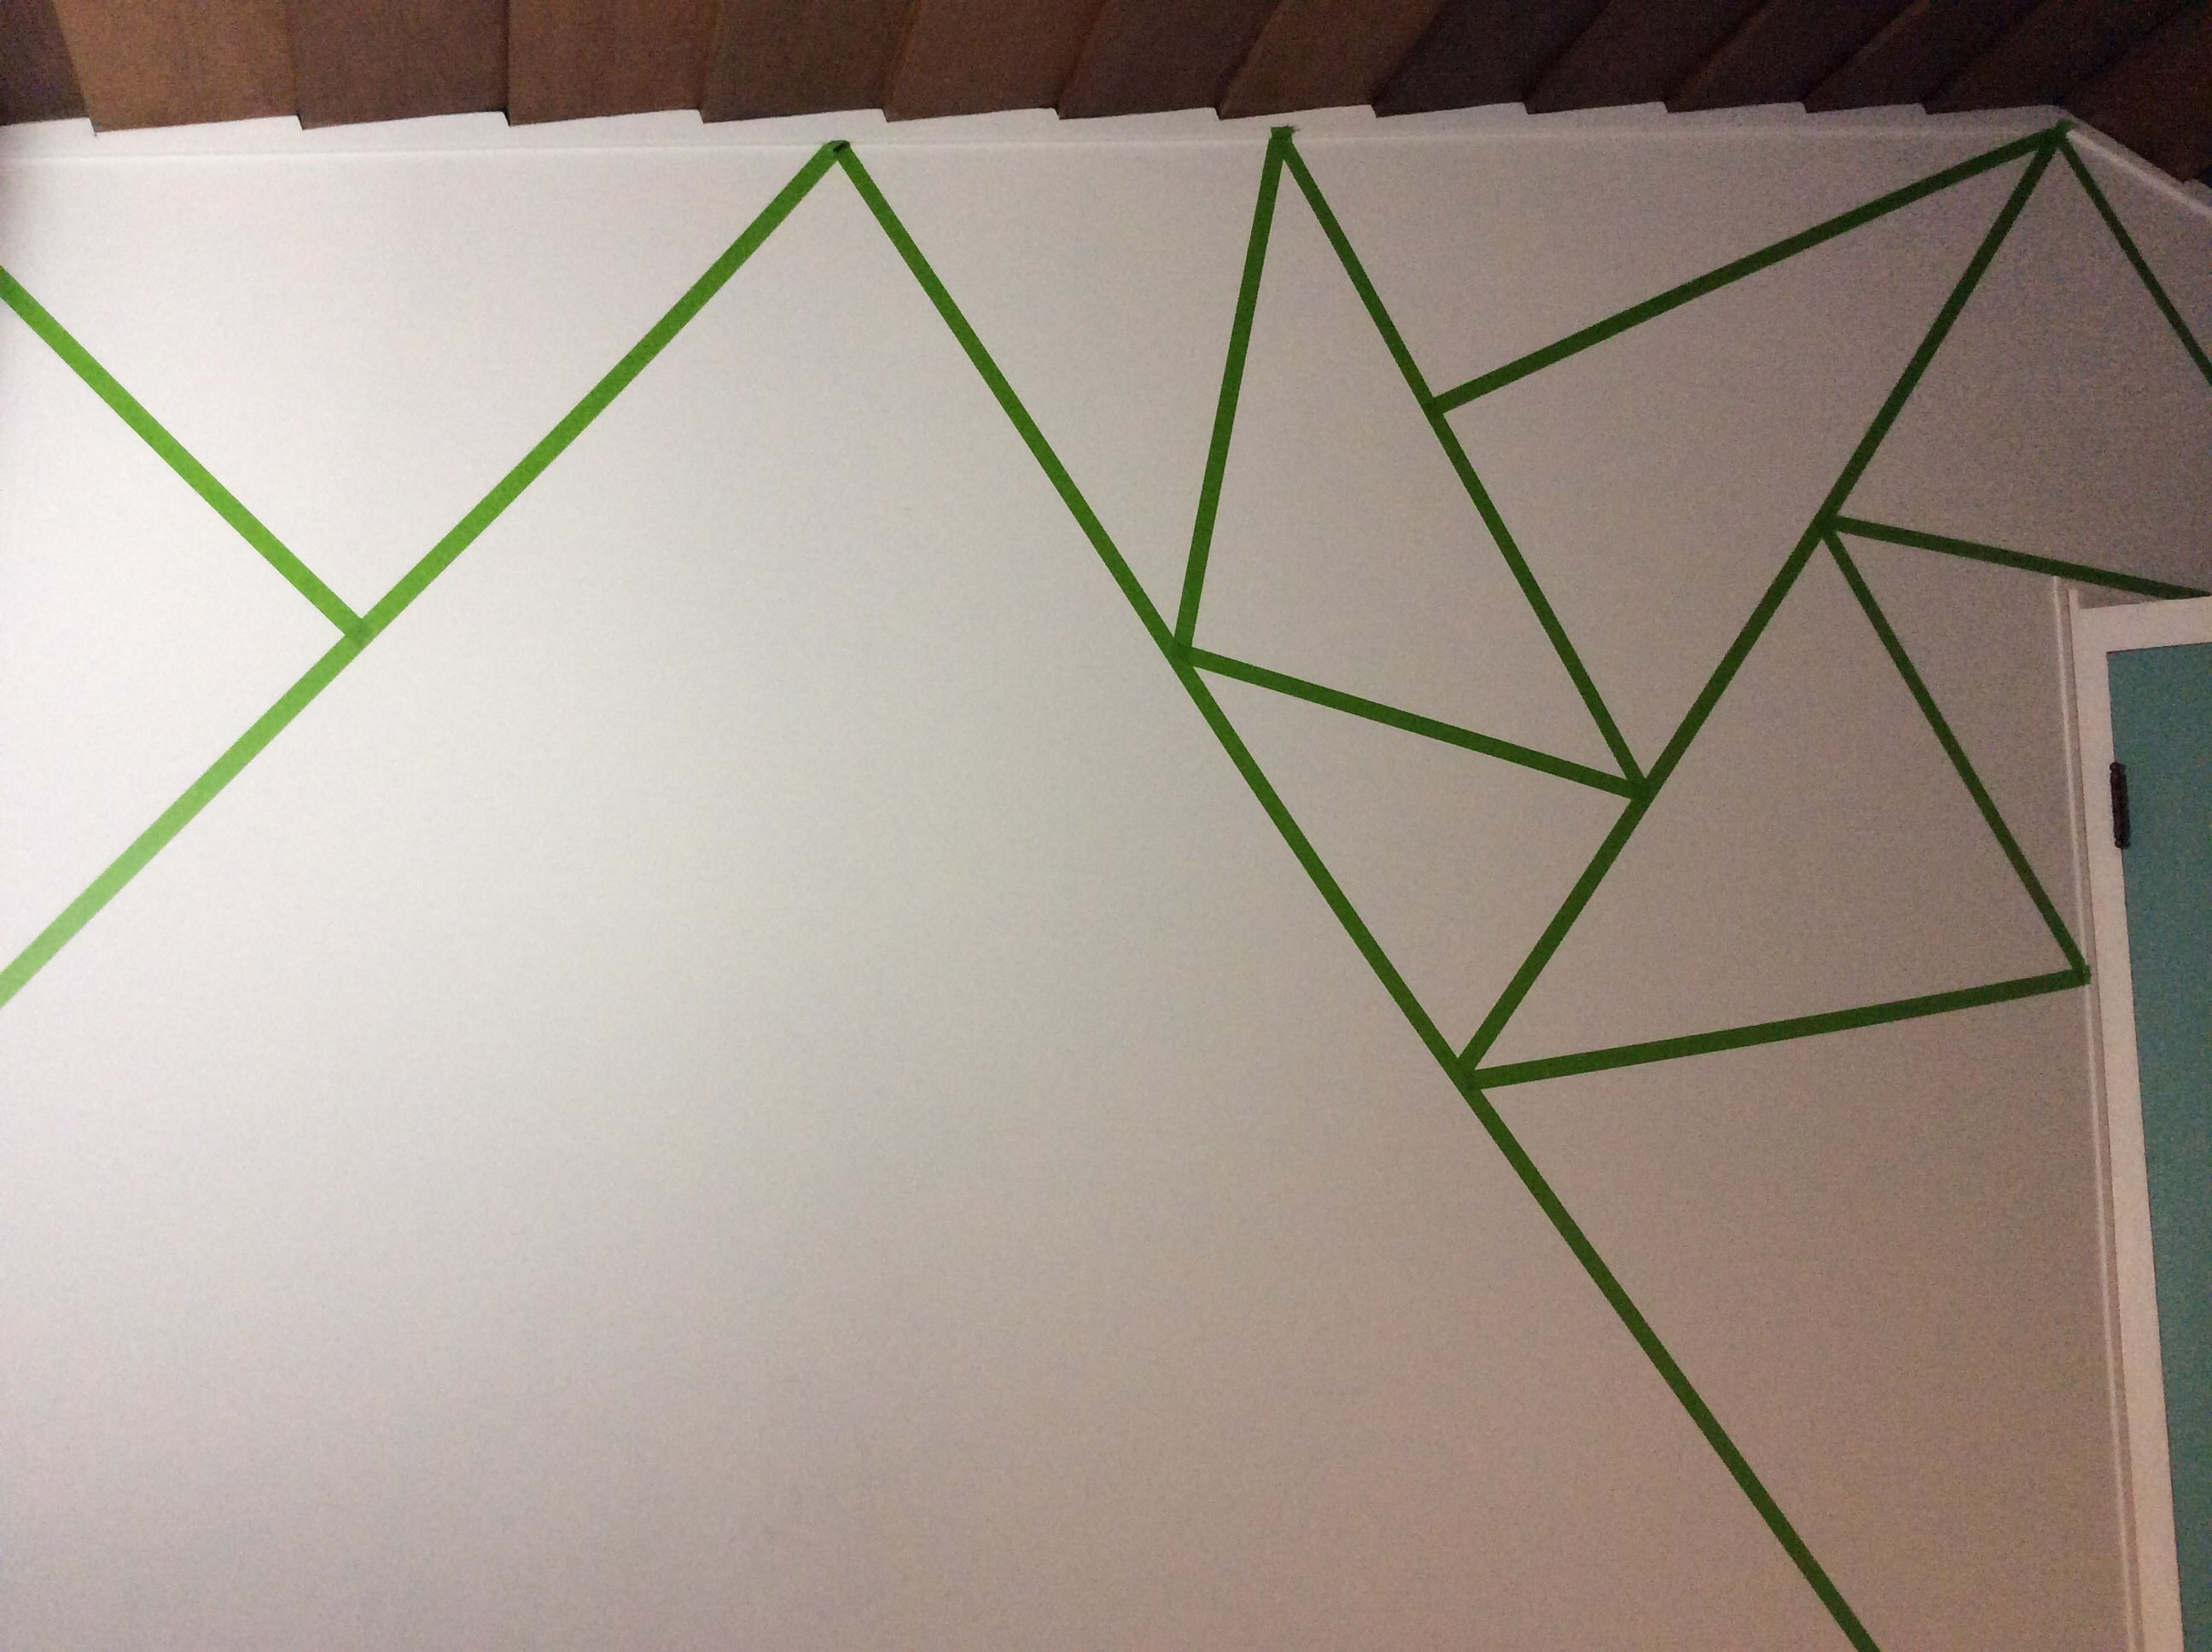 How To Start Your Triangle Wall Use Frog Tape Only Frog Tape Wall Triangle Wall Tape Wall